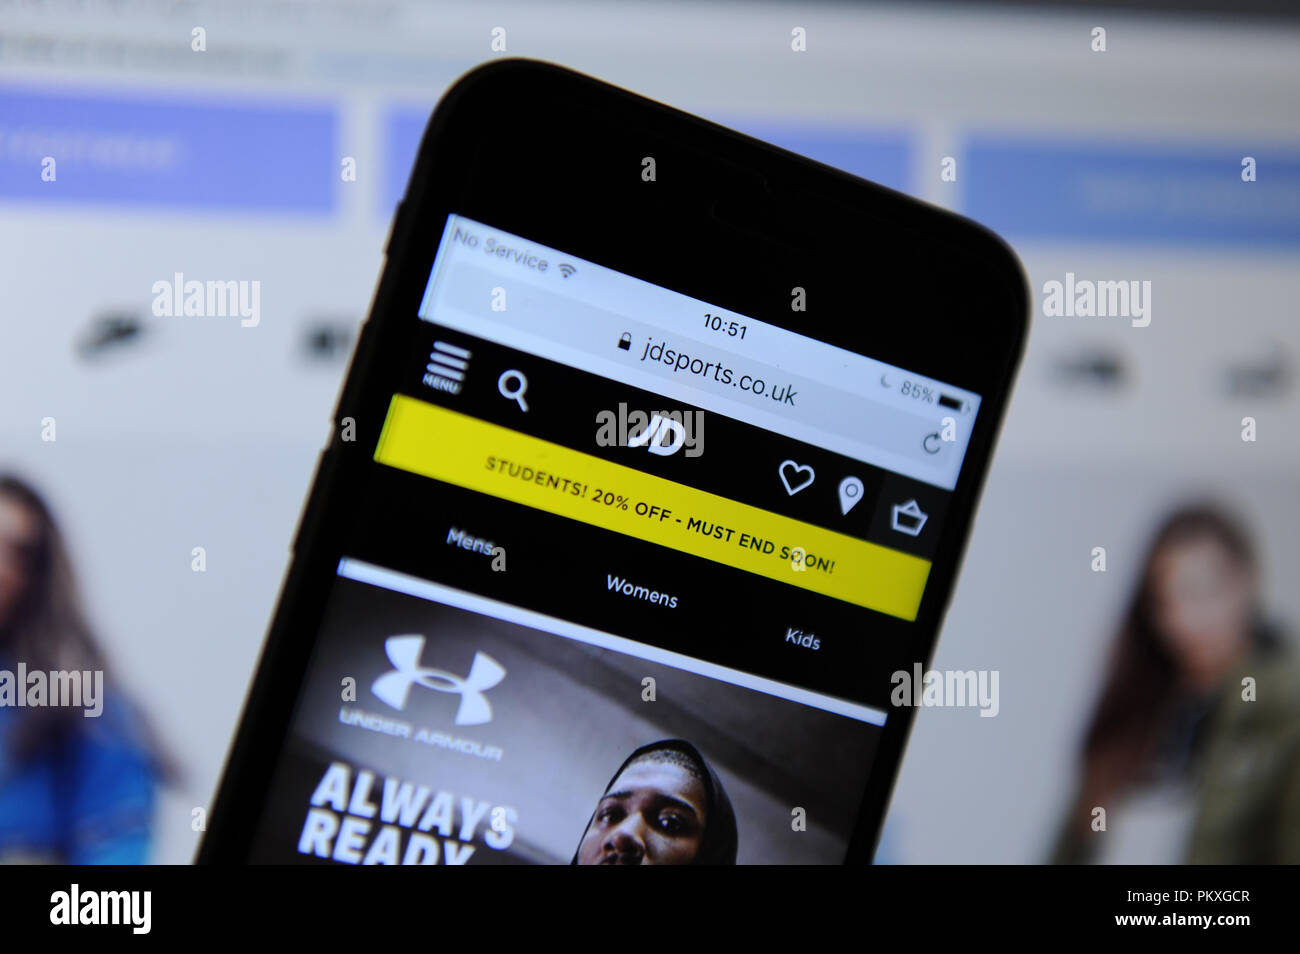 JD Sports website on a phone and website - Stock Image